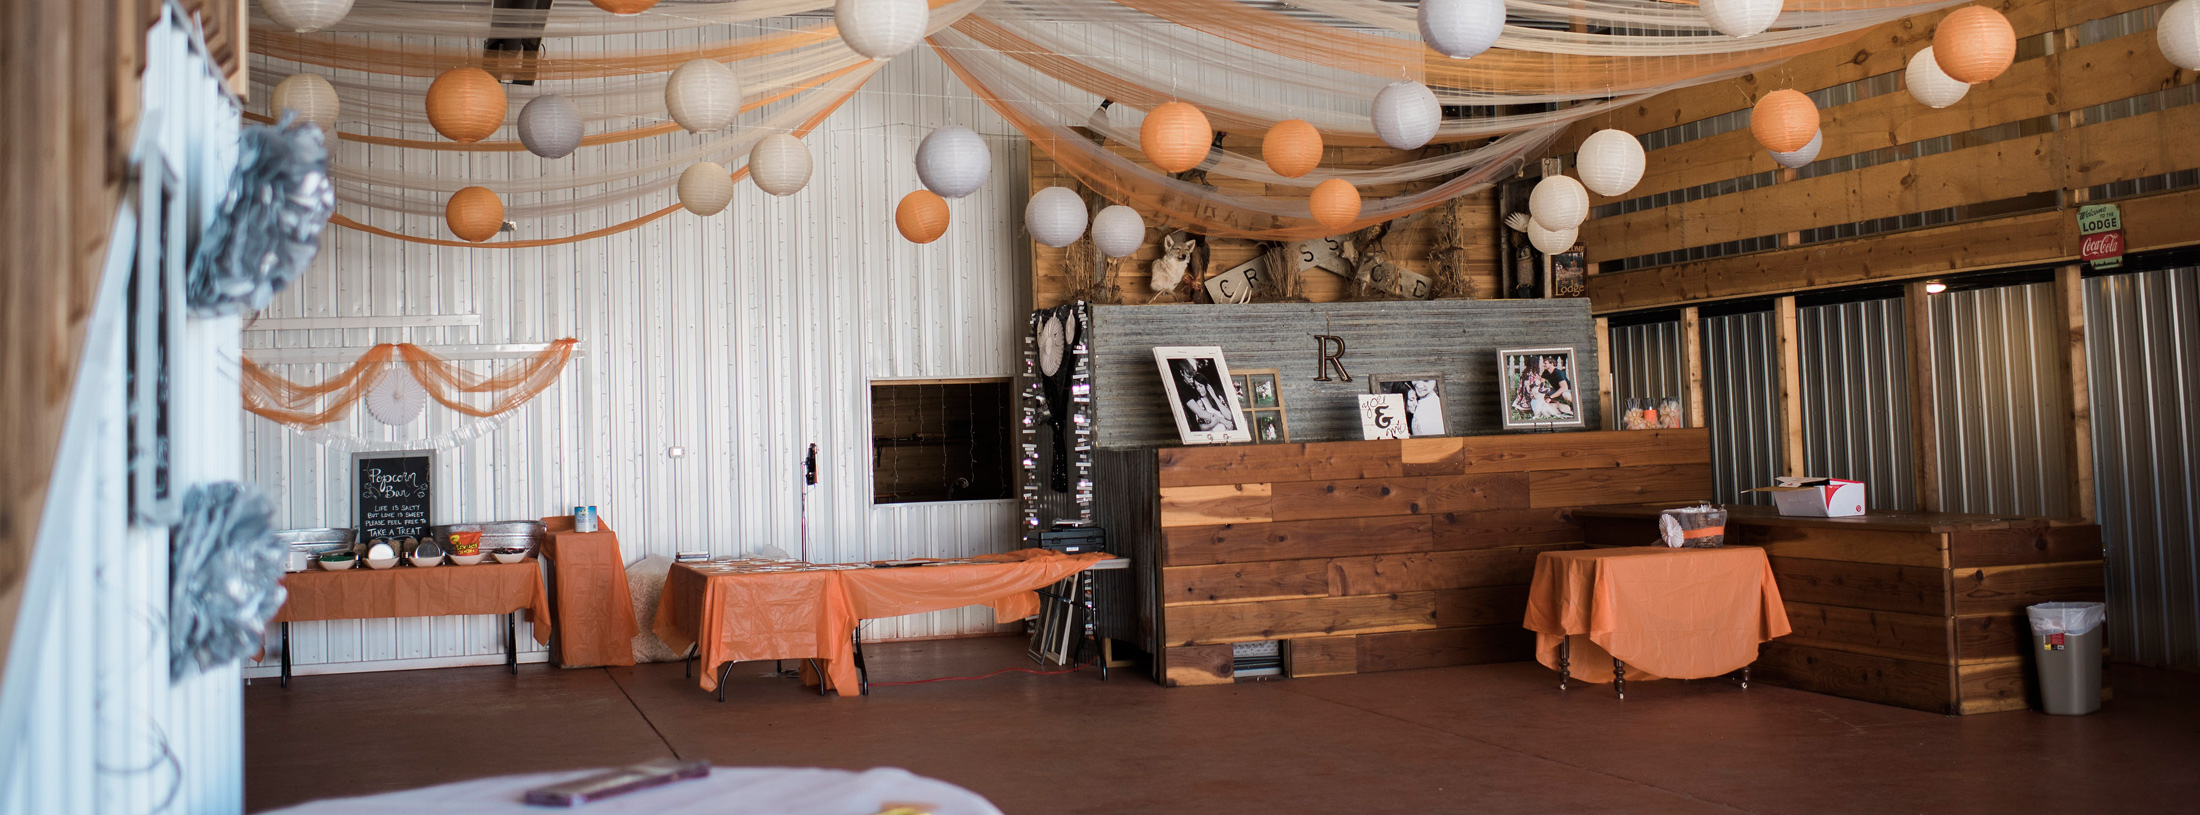 Lodge for Parties and Events in Bruce, SD